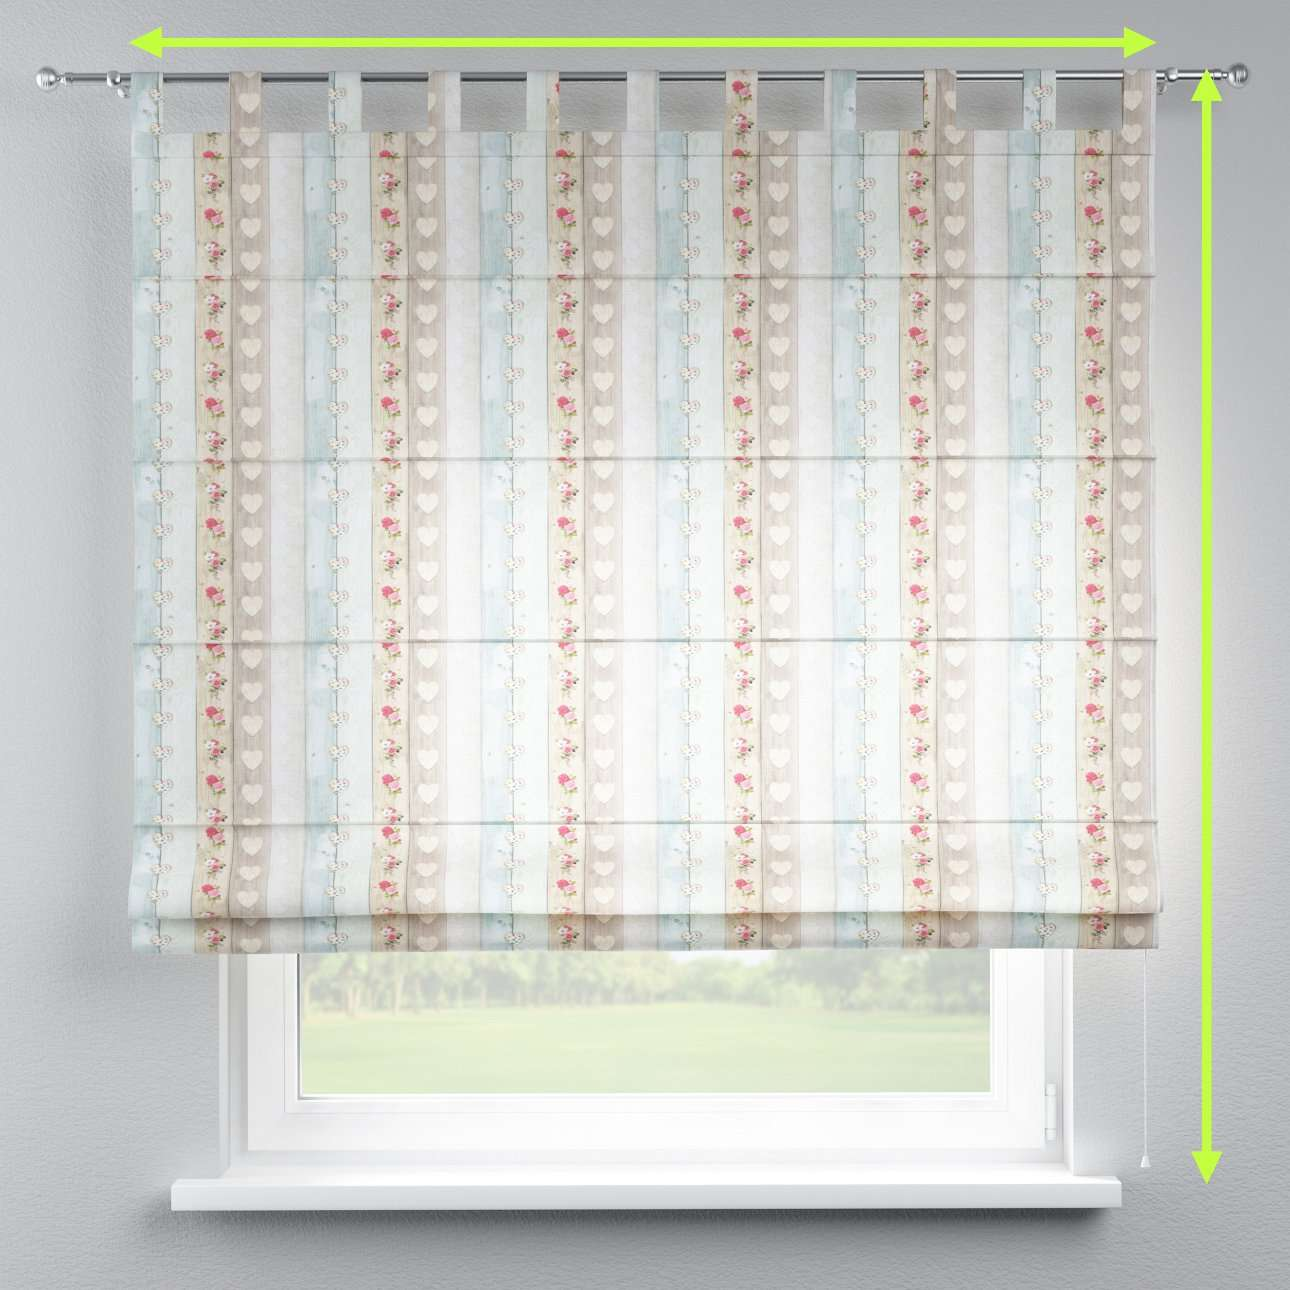 Verona tab top roman blind in collection Ashley, fabric: 140-20